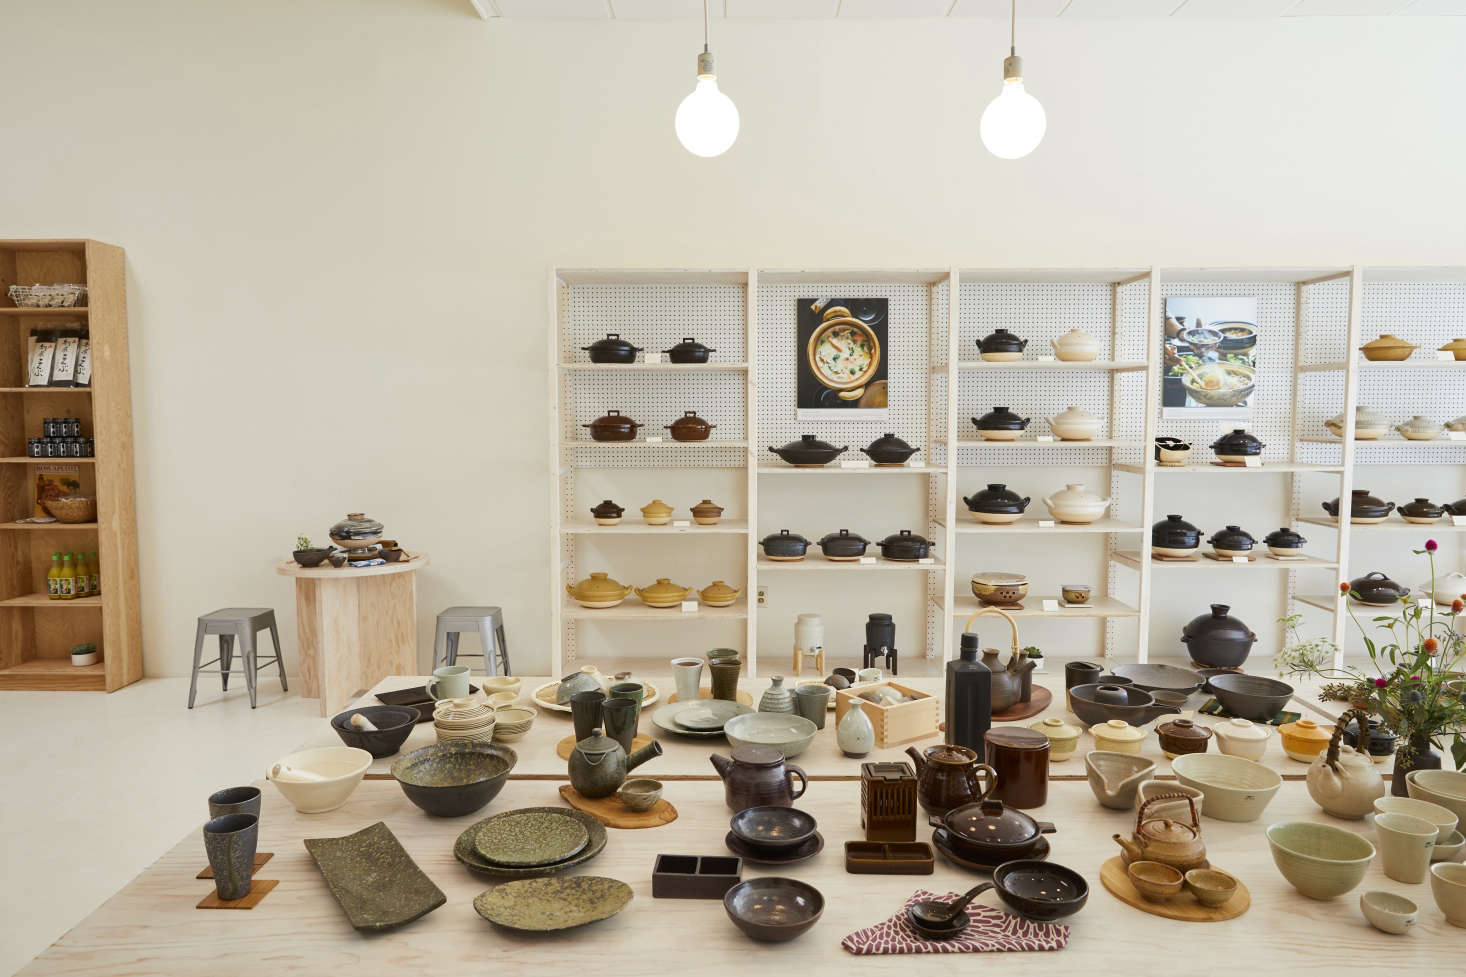 Shelves at the front of the store prominently feature Takei Moore's donabe offerings, including Rice Cookers, Steamers, Smokers, and more. (A style of donabe exists for almost every style of cooking.)